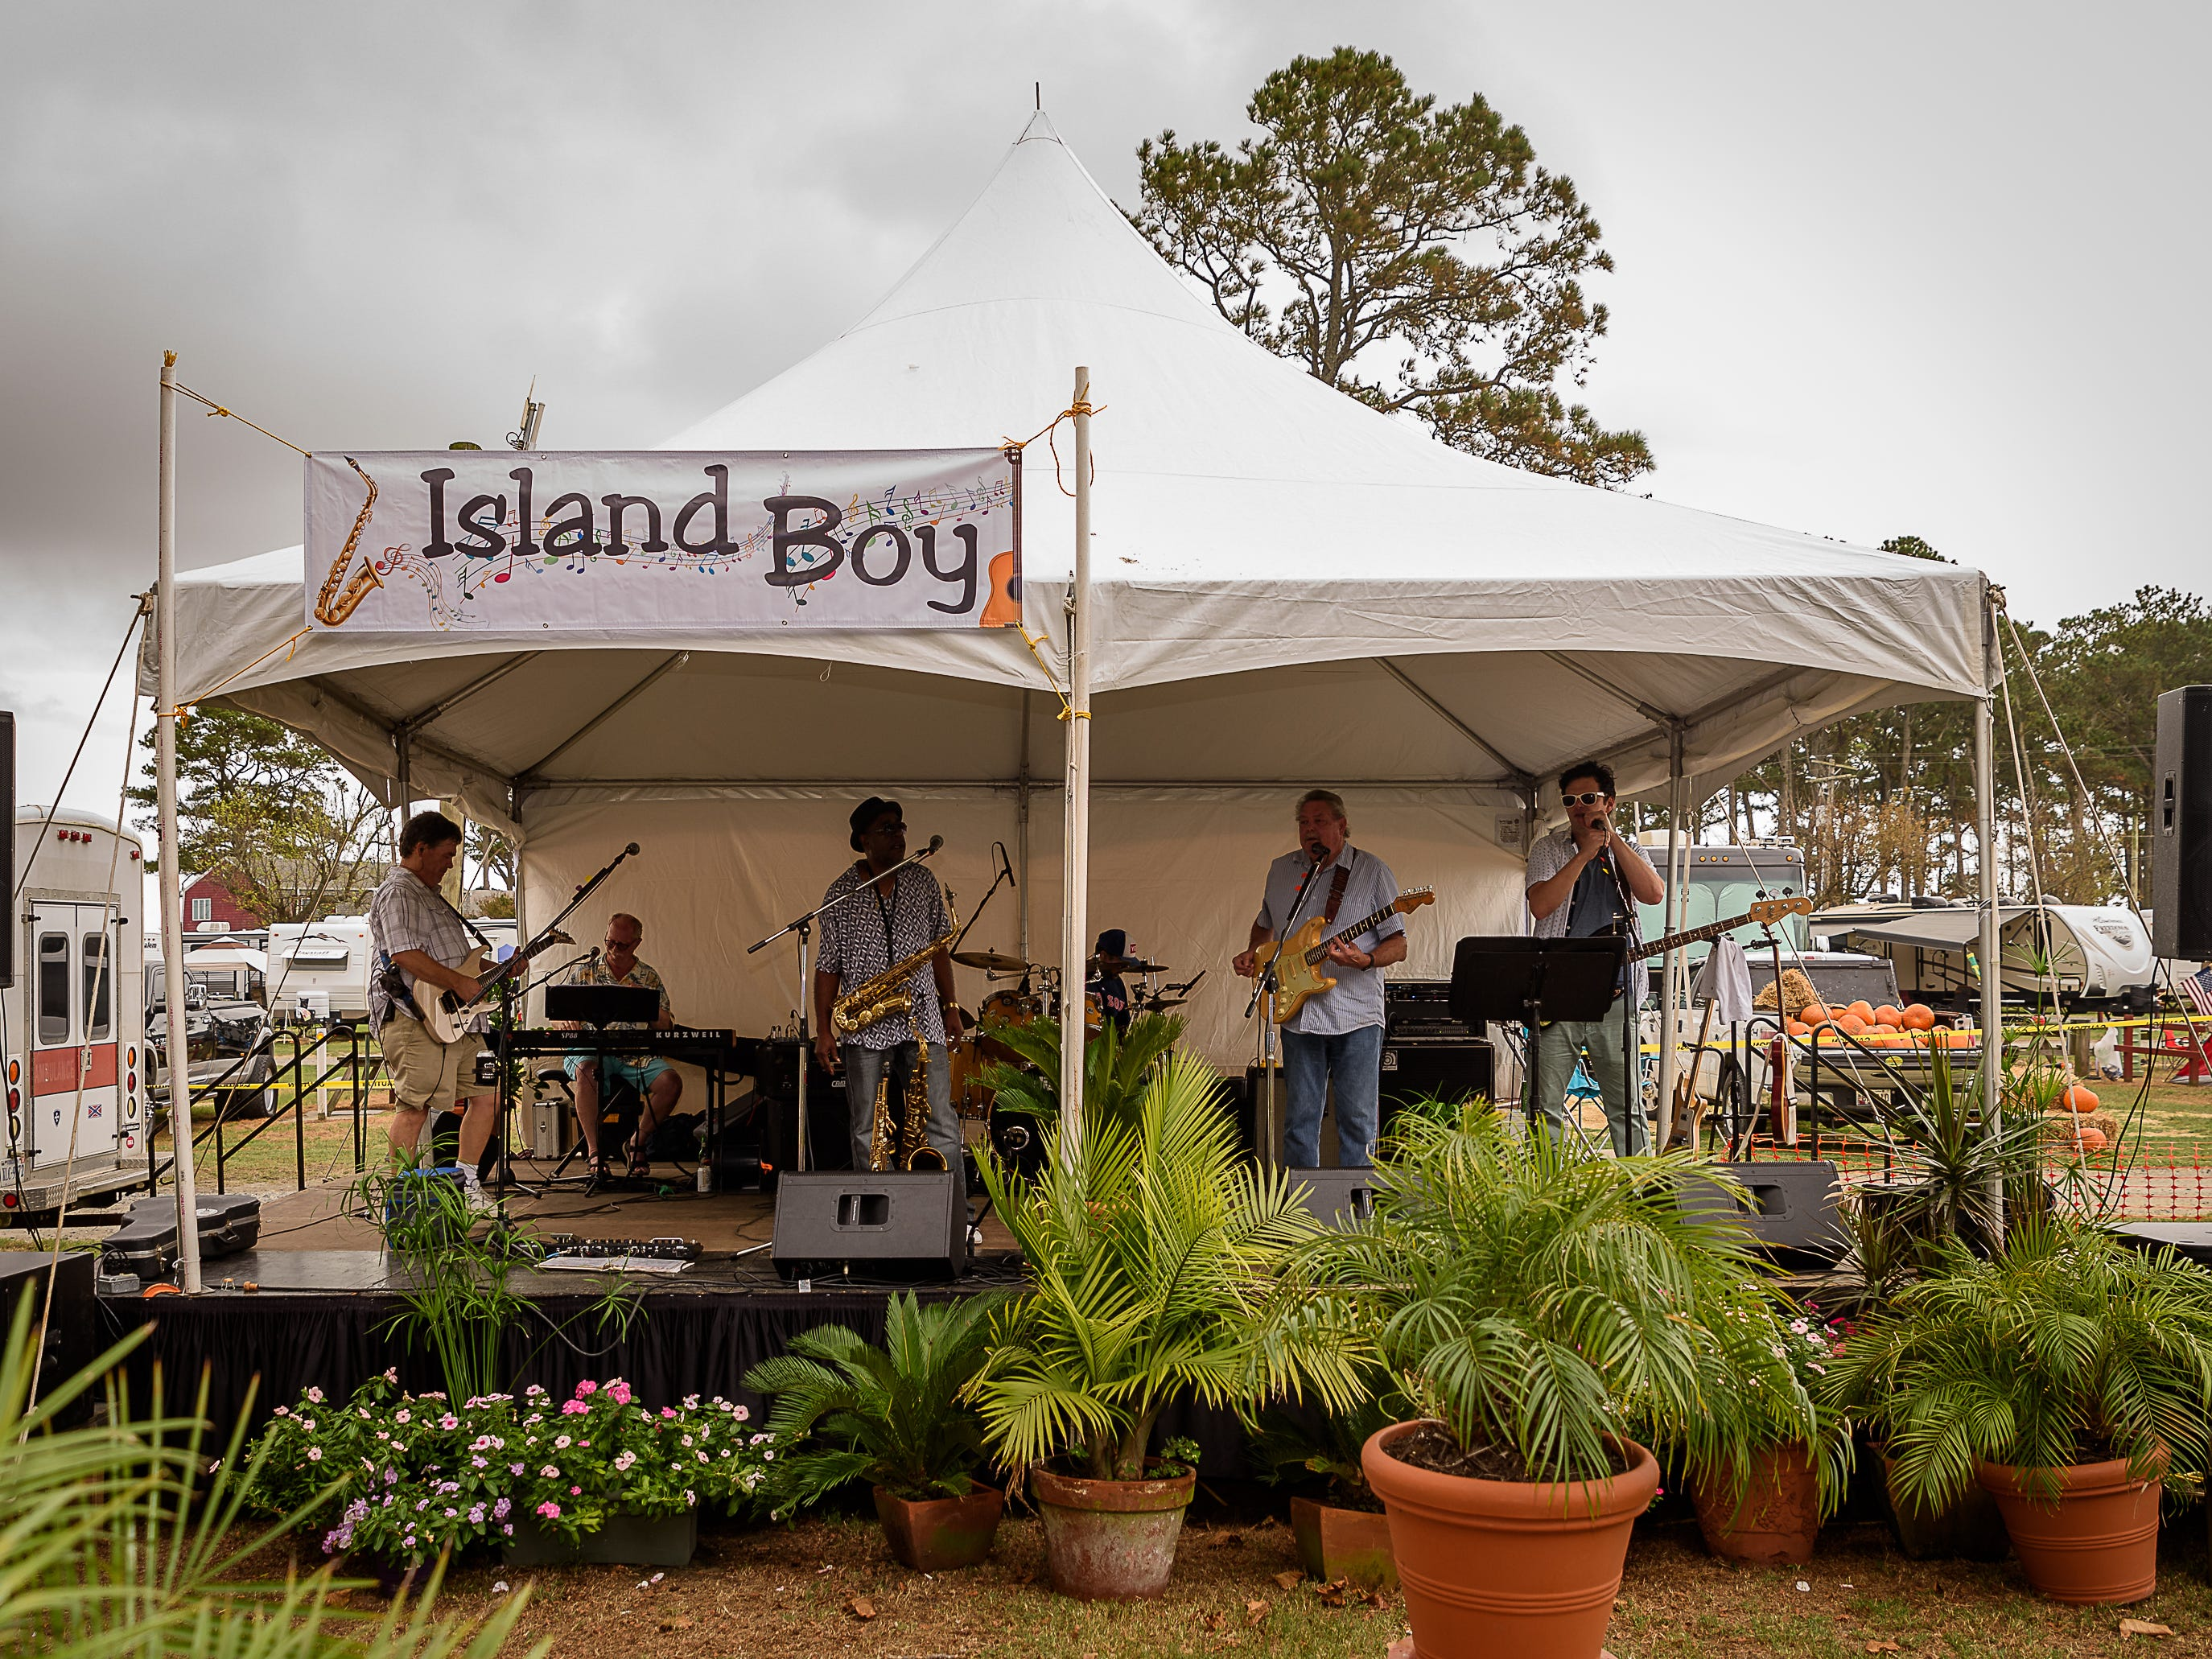 The  Island Boy band entertains the crowd at the Chincoteague Oyster Festival held Saturday, Oct. 6, at Tom's Cove Campground. The annual festival served up Chincoteague oysters and other seafood along with music and fun.